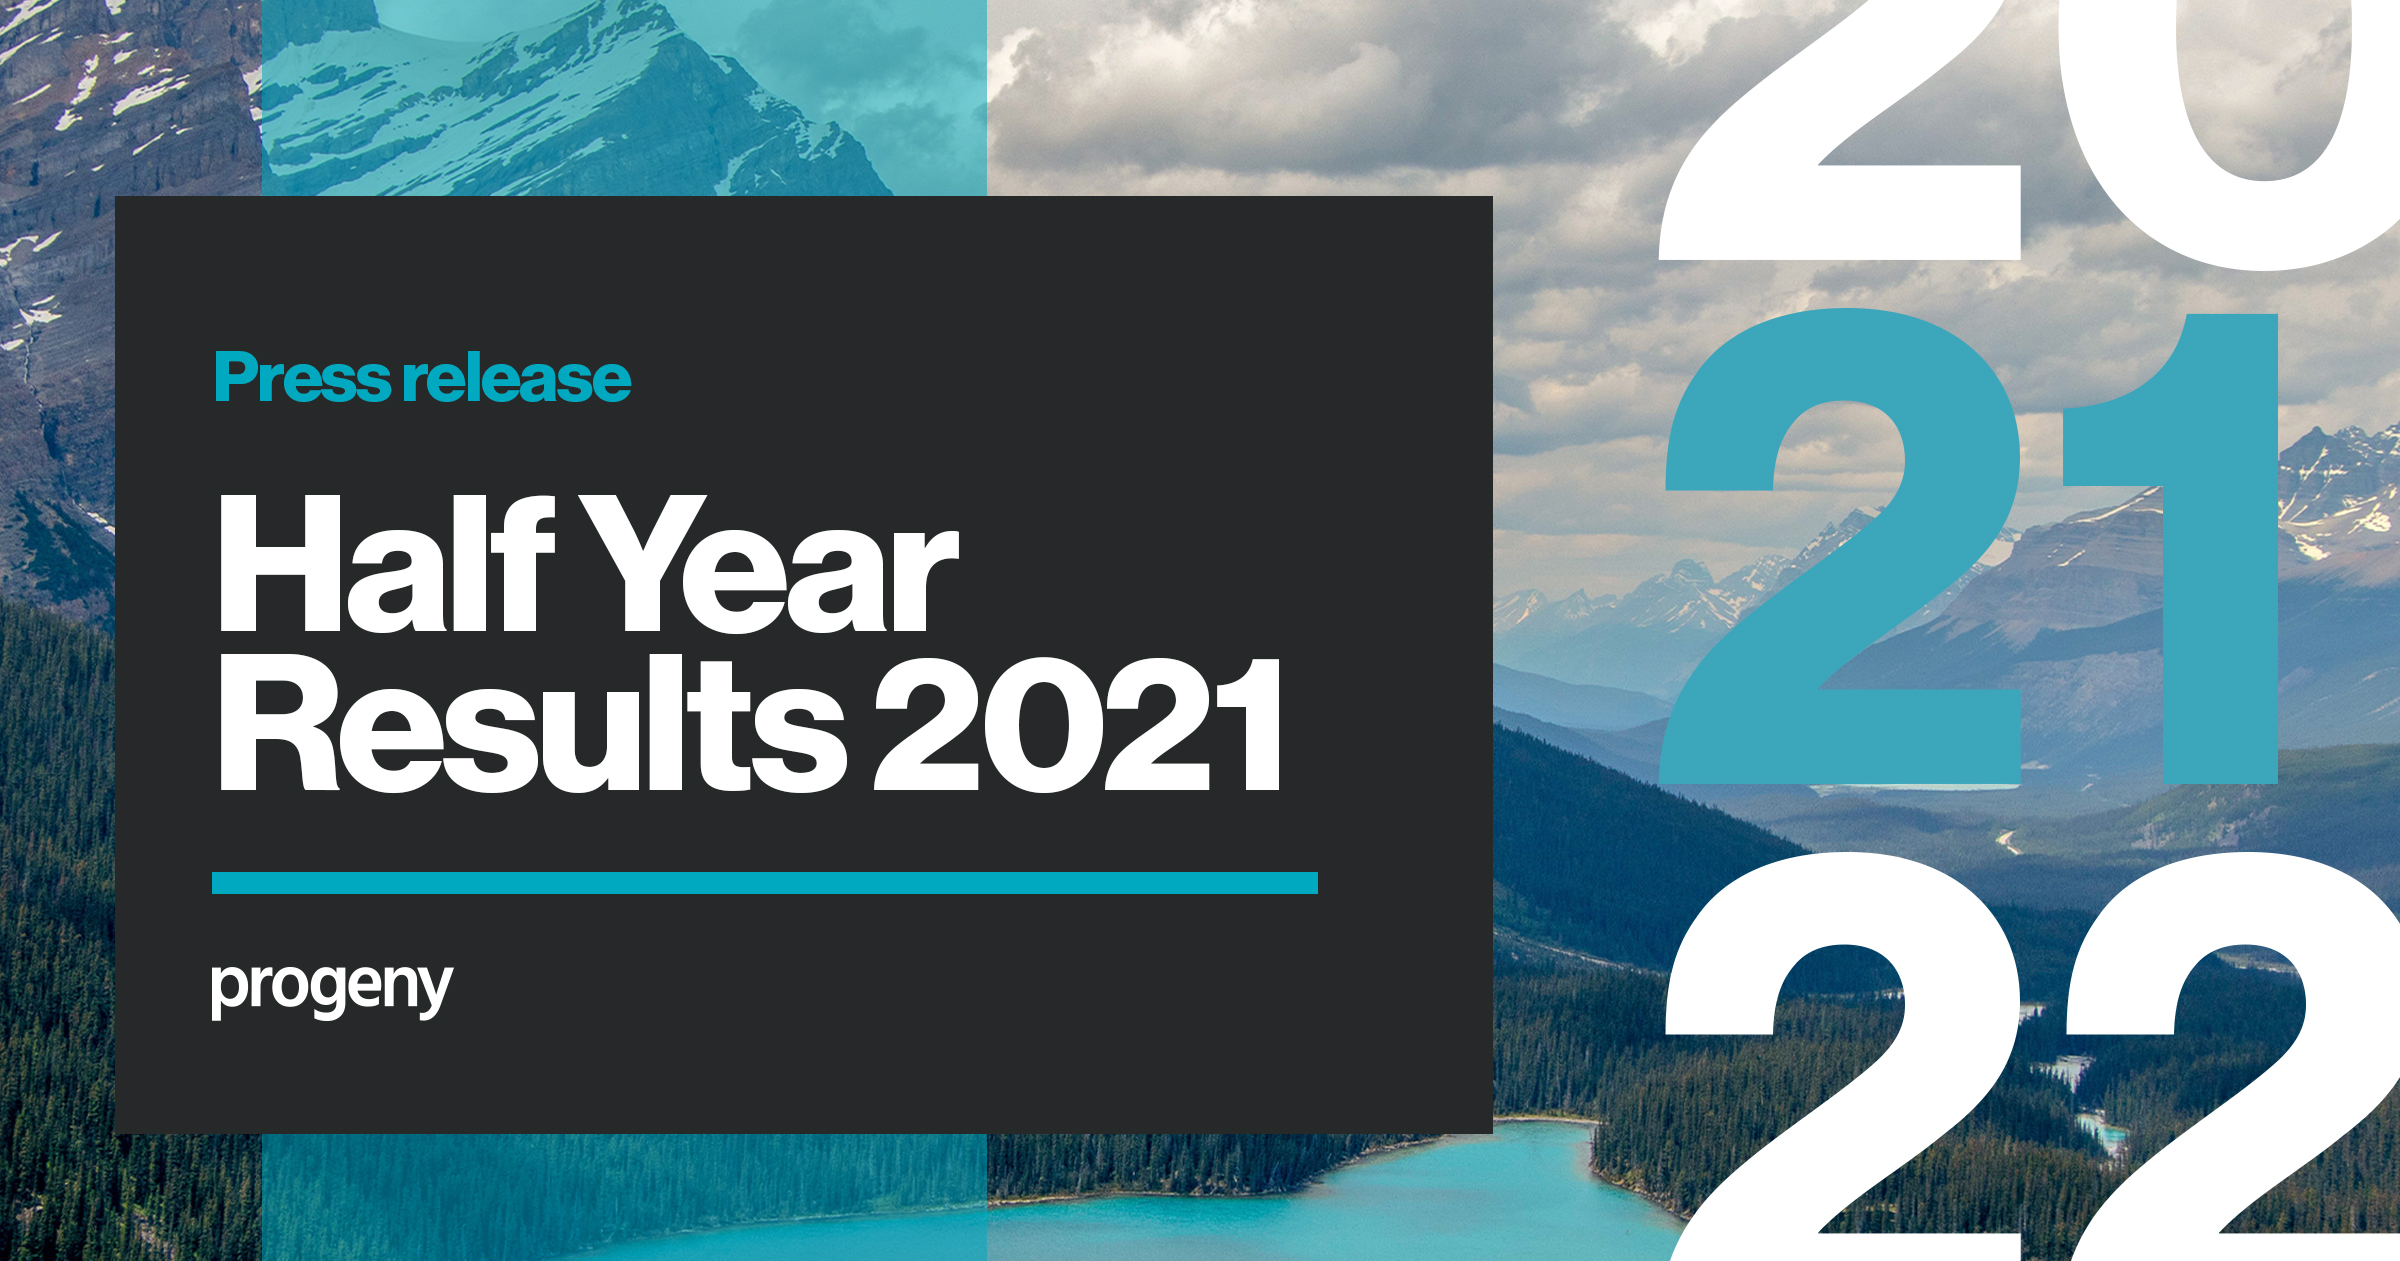 Half year results Progeny growth in numbers 2021